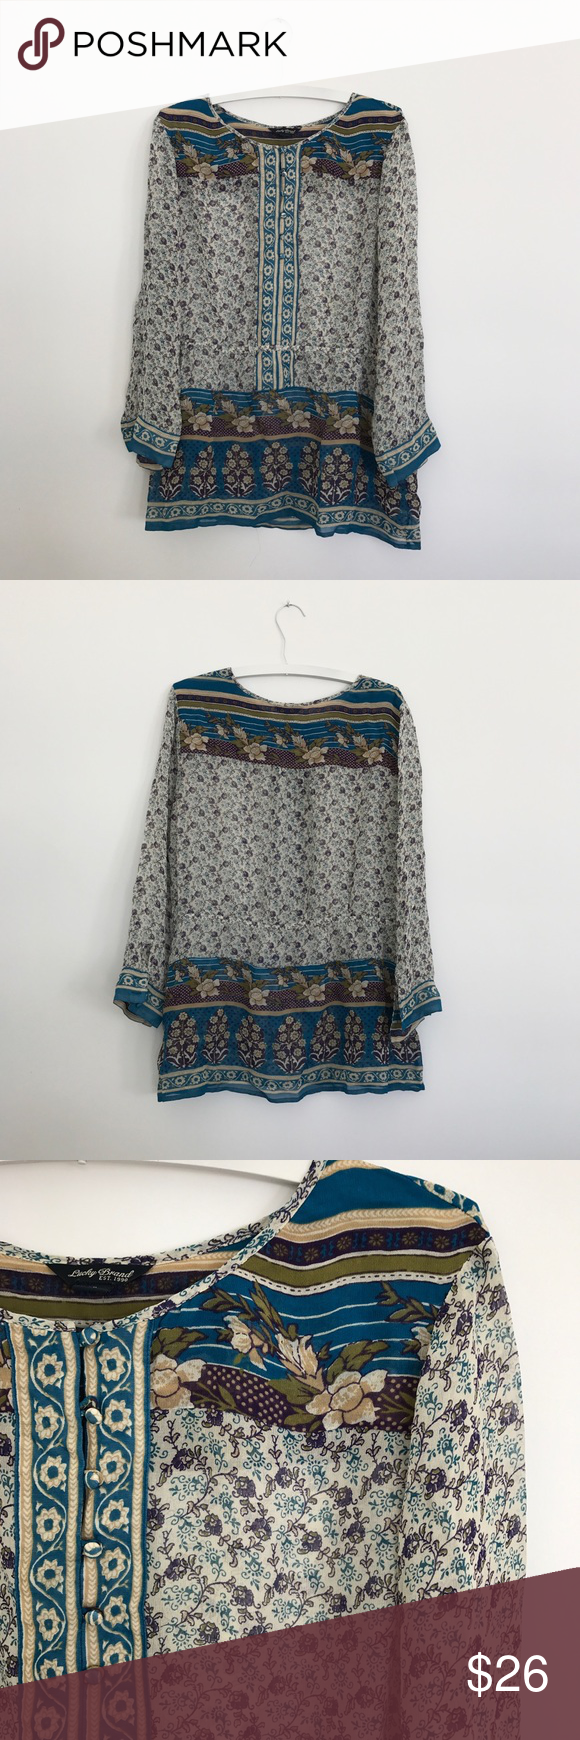 """Lucky Brand floral sheer tunic popover peasant top Lucky Brand savannah gypsy top. floral semi-sheer tunic popover top. Boho. Loose elastic cinched waist. Button neckline. Sheer fabric. Sleeve slightly roll up. Button at wrist. Measure flat: pit to pit 24"""", back length 27.5"""", shoulder to wrist 21.5"""". 100% rayon but tag cut out. Please let me know if you have any questions. Lucky Brand Tops Blouses"""